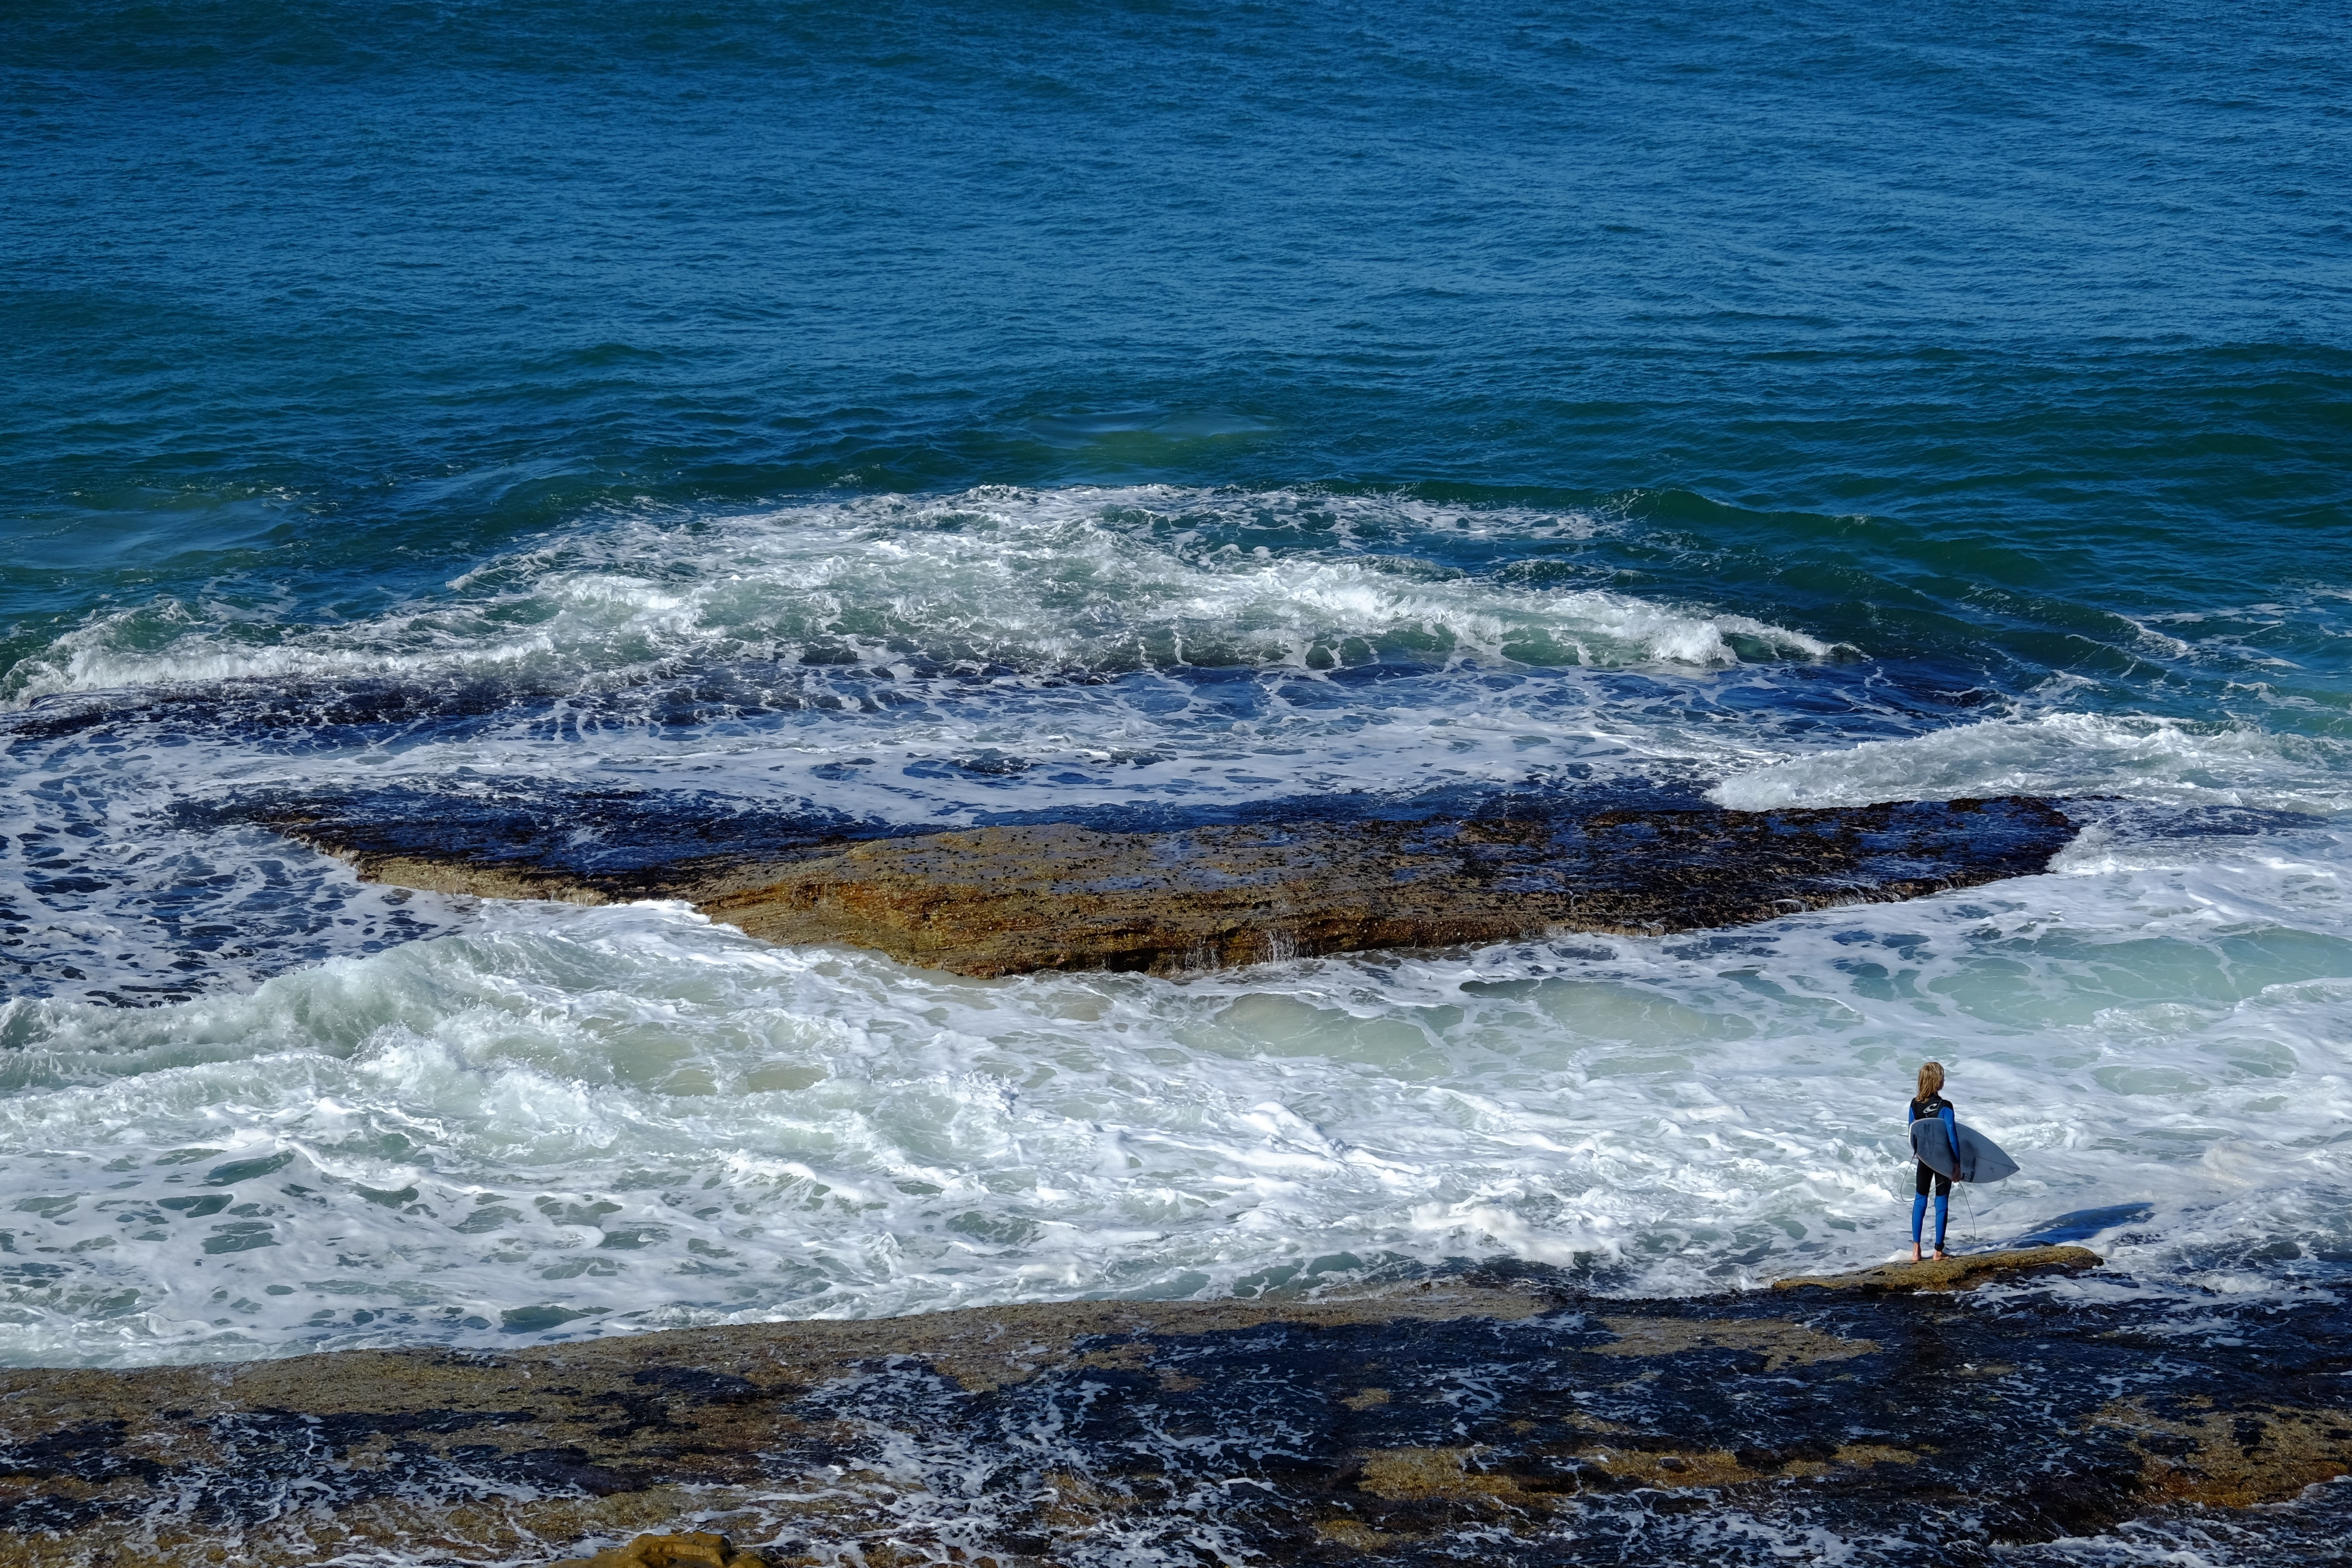 Surfer standing on the rock that is washed up by the ocean at Bondi Beach